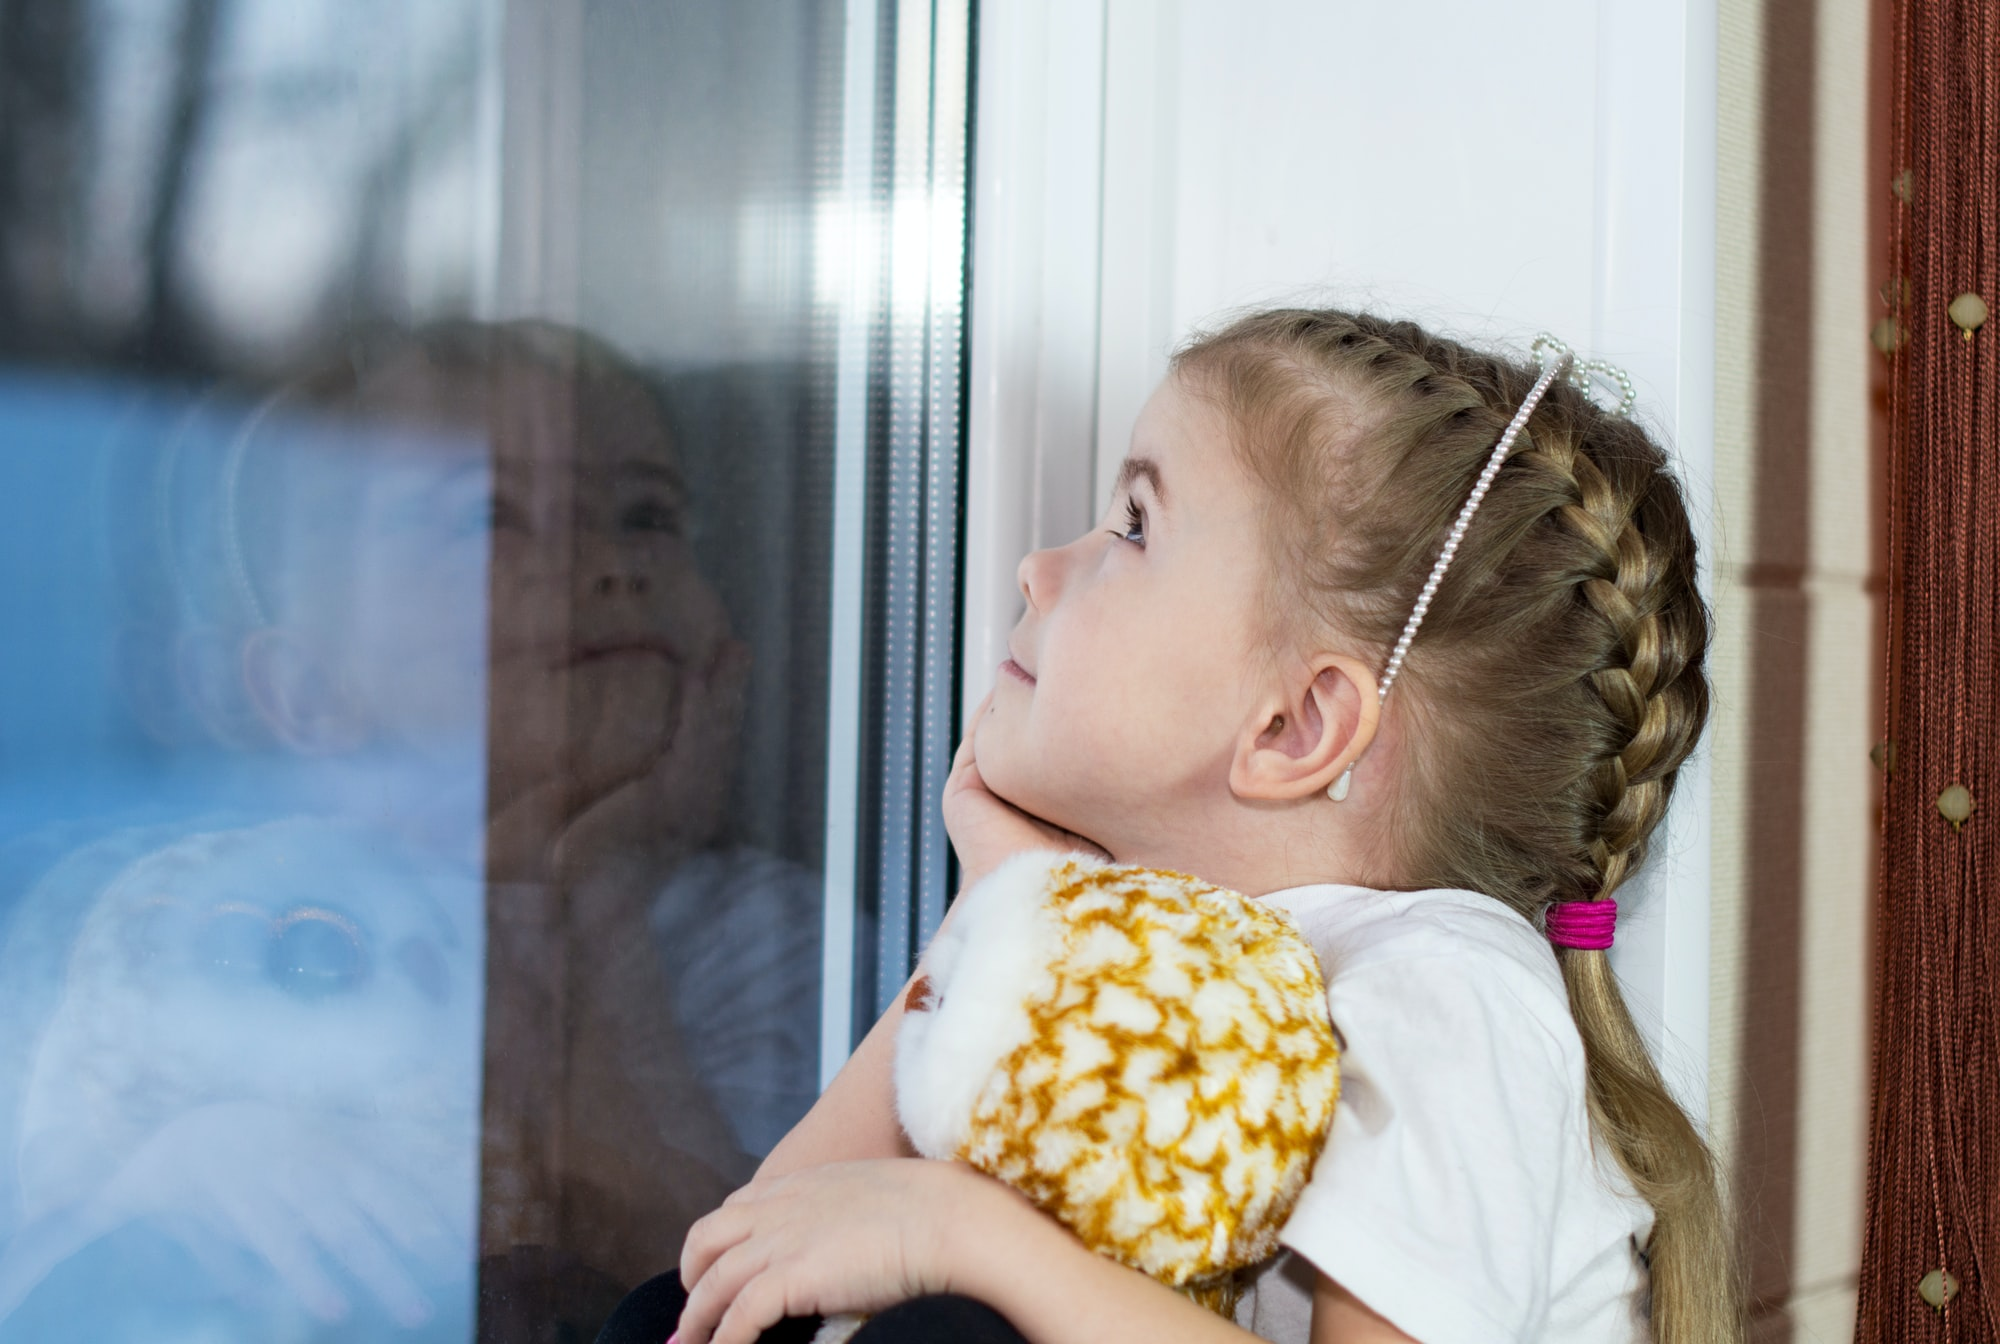 A little girl with a toy sits on the windowsill and draws on the window